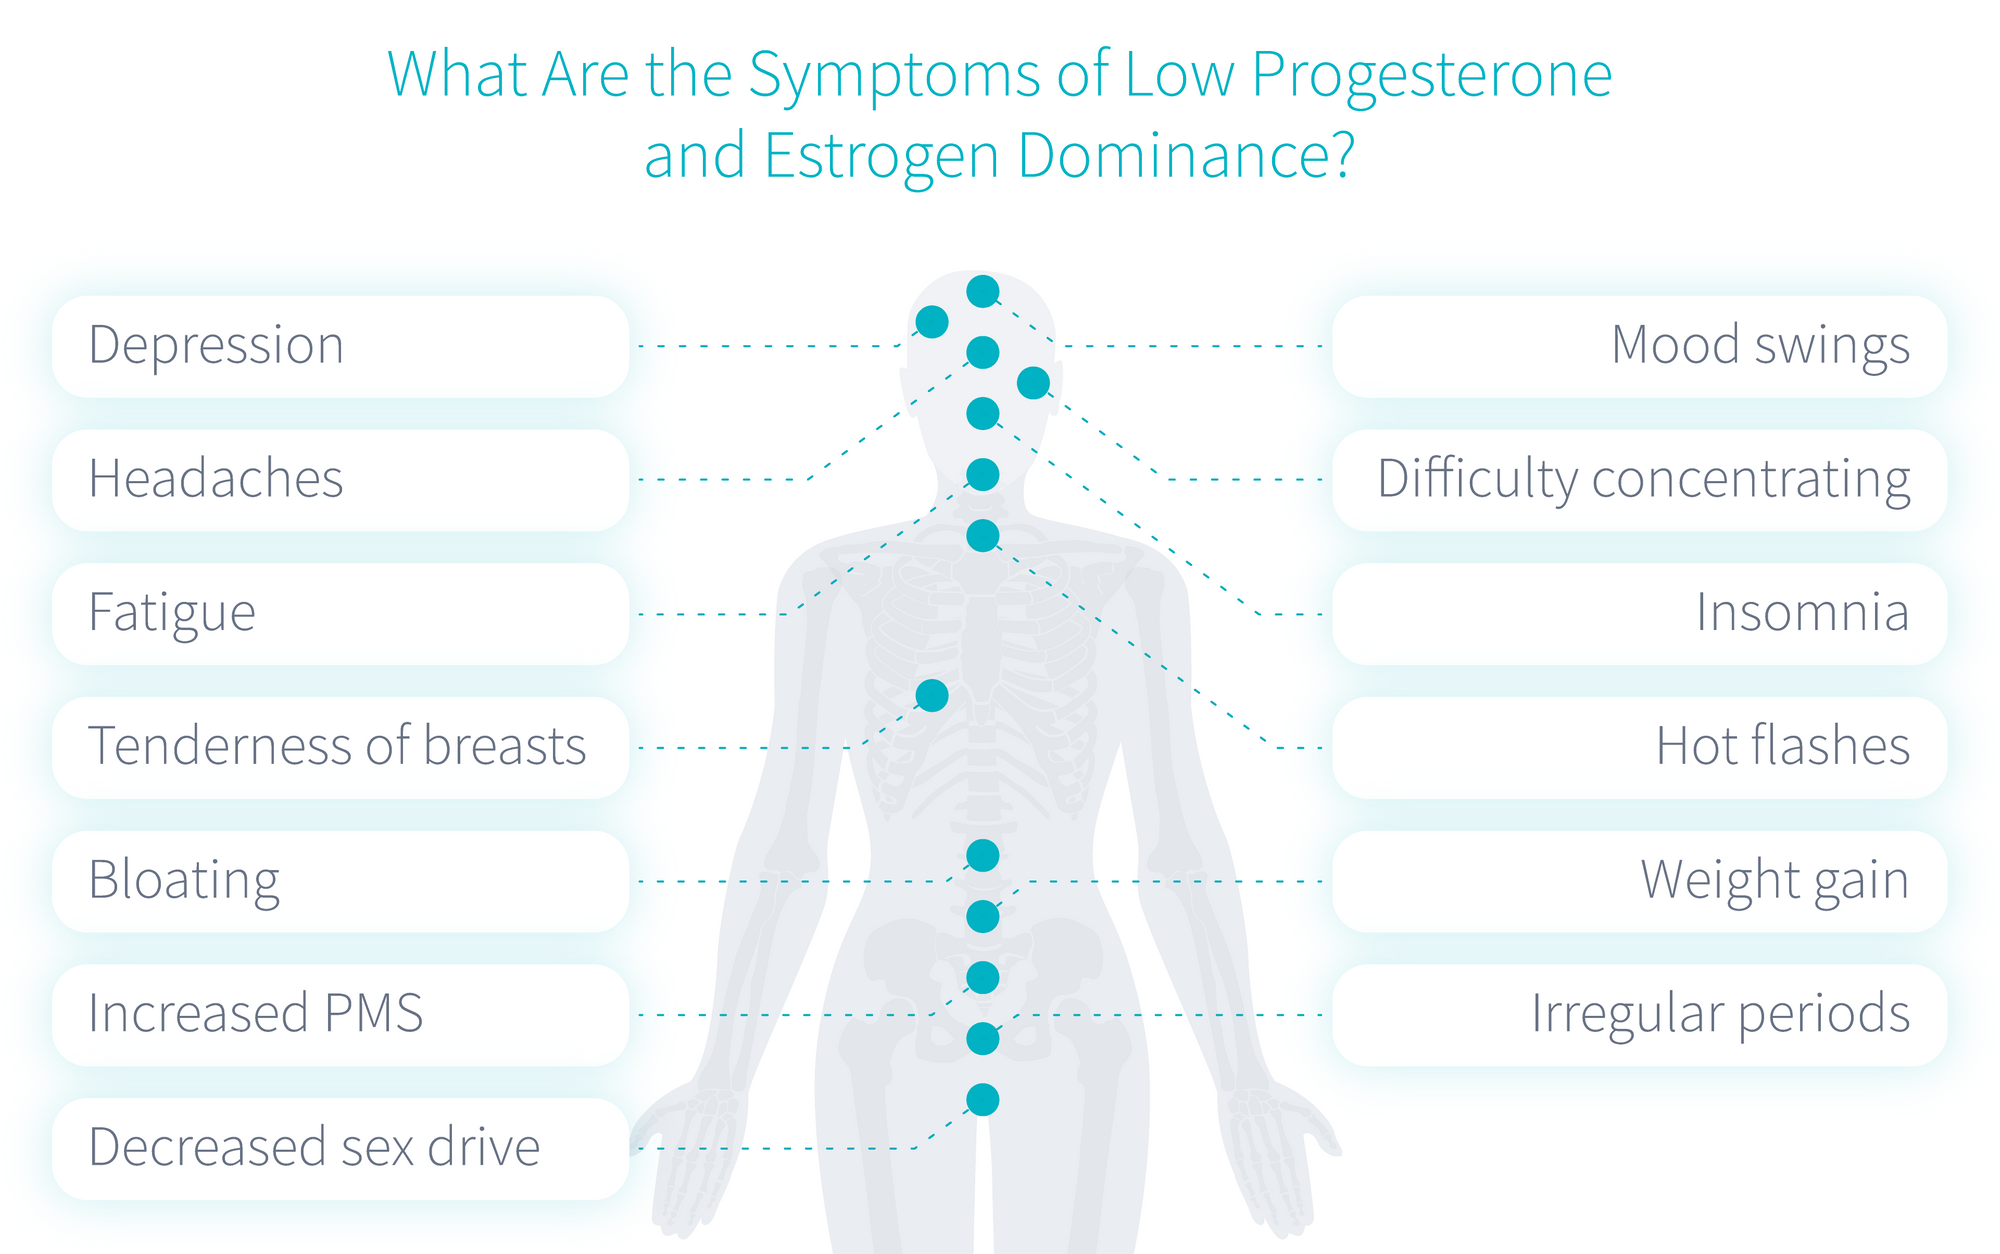 How To Increase Your Progesterone Levels Without Medication Progesterone Levels Progesterone Increase Progesterone